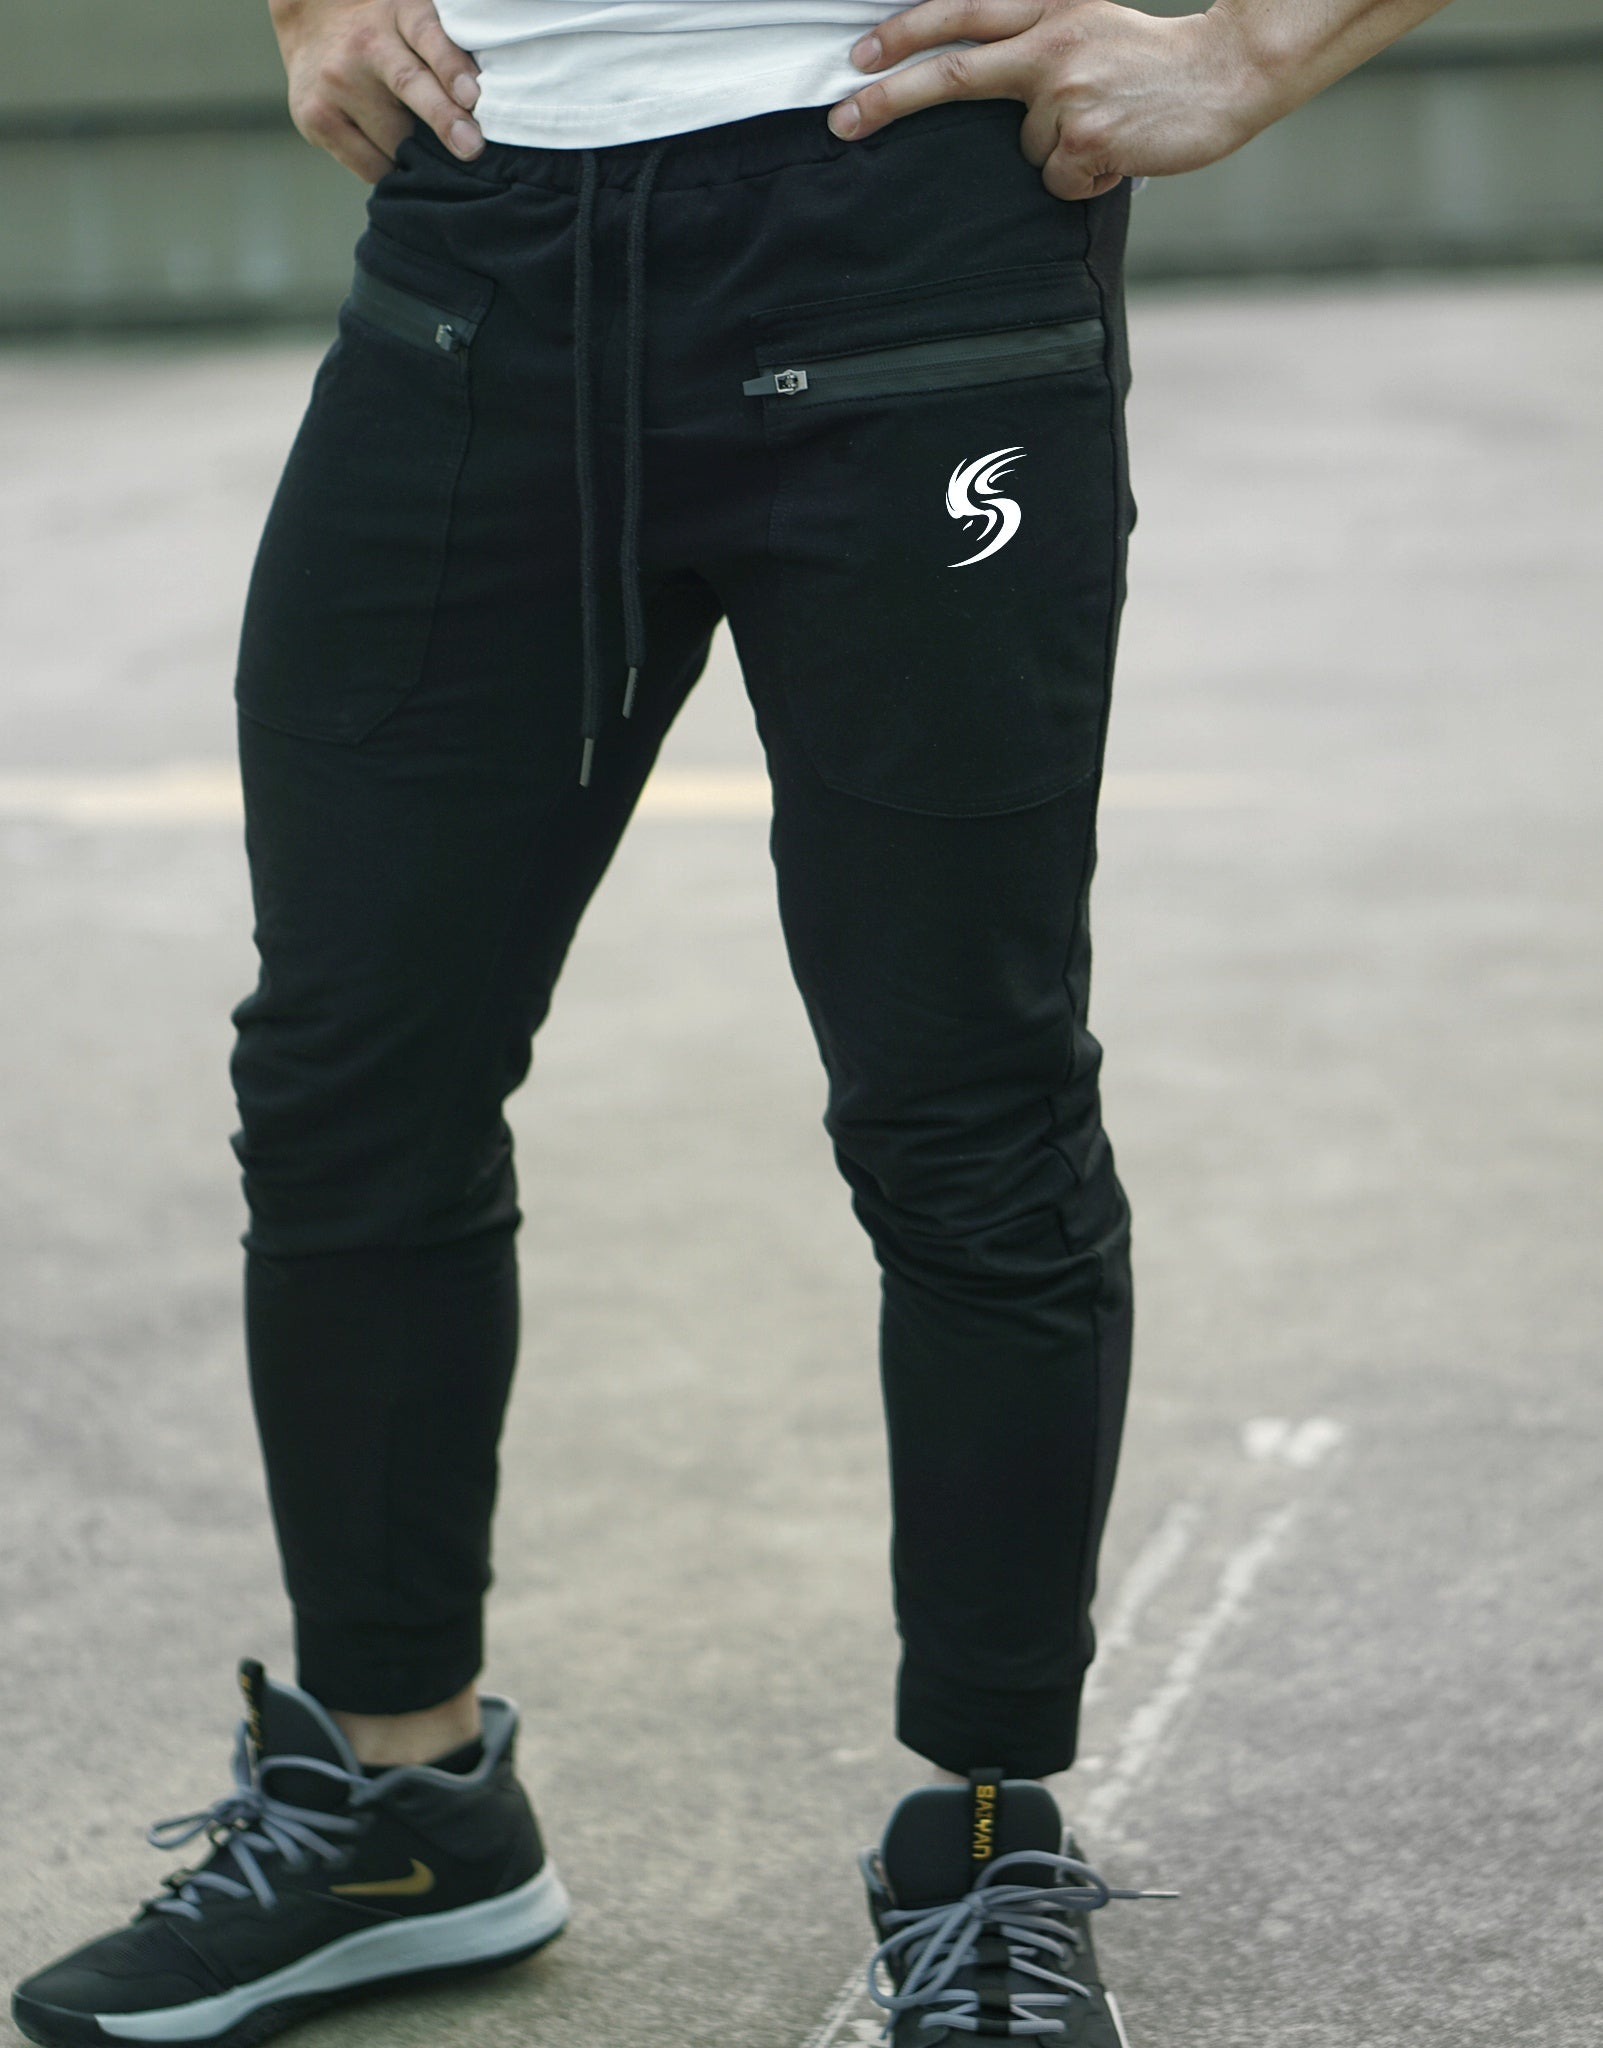 V2 Legendary Fitted Pants - Elite Black